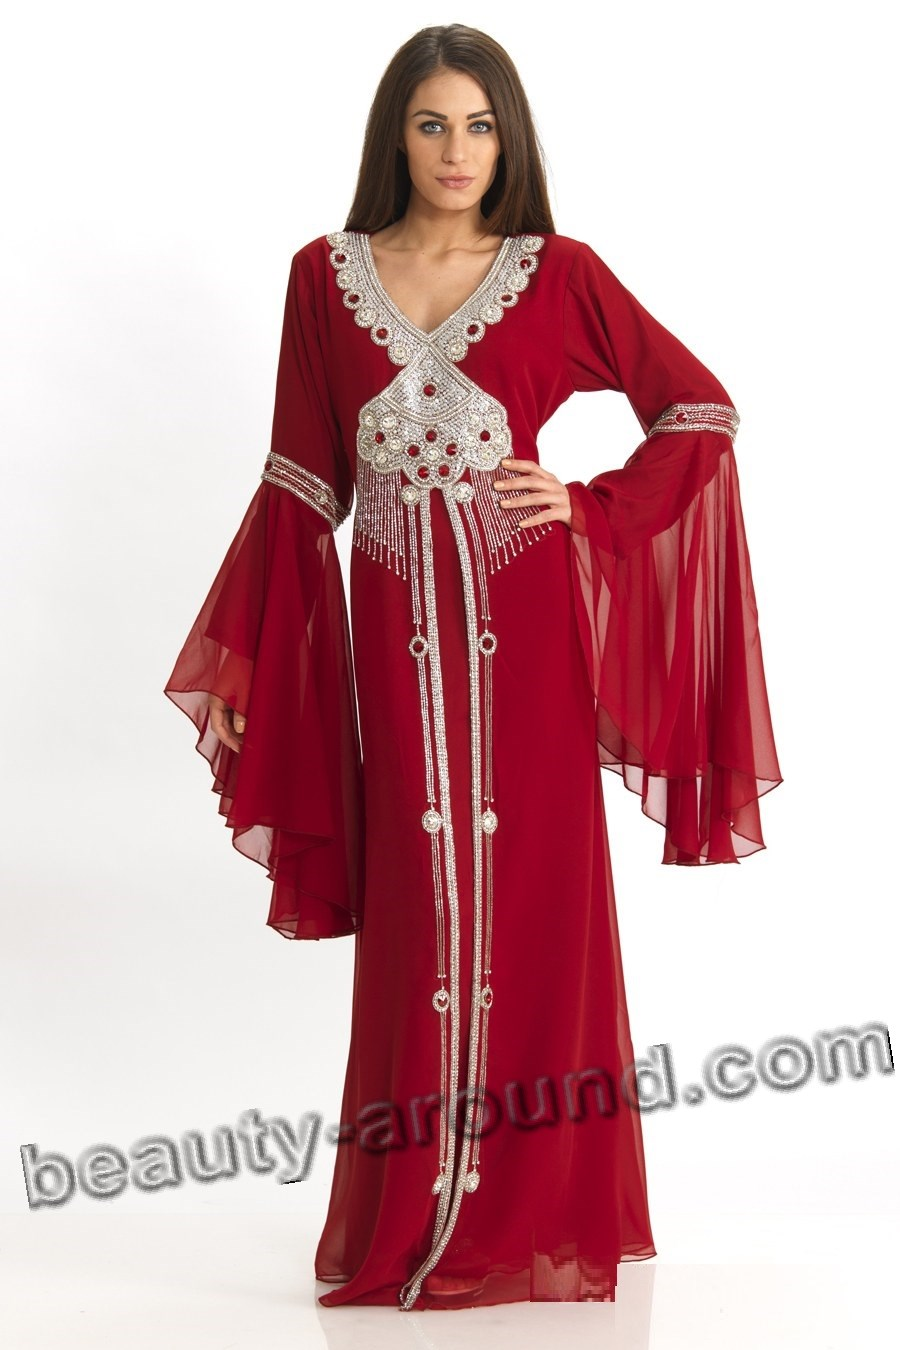 exceptional range of colors new lower prices well known Muslim Women's Dresses: Abaya and Caftan (30 Photos)